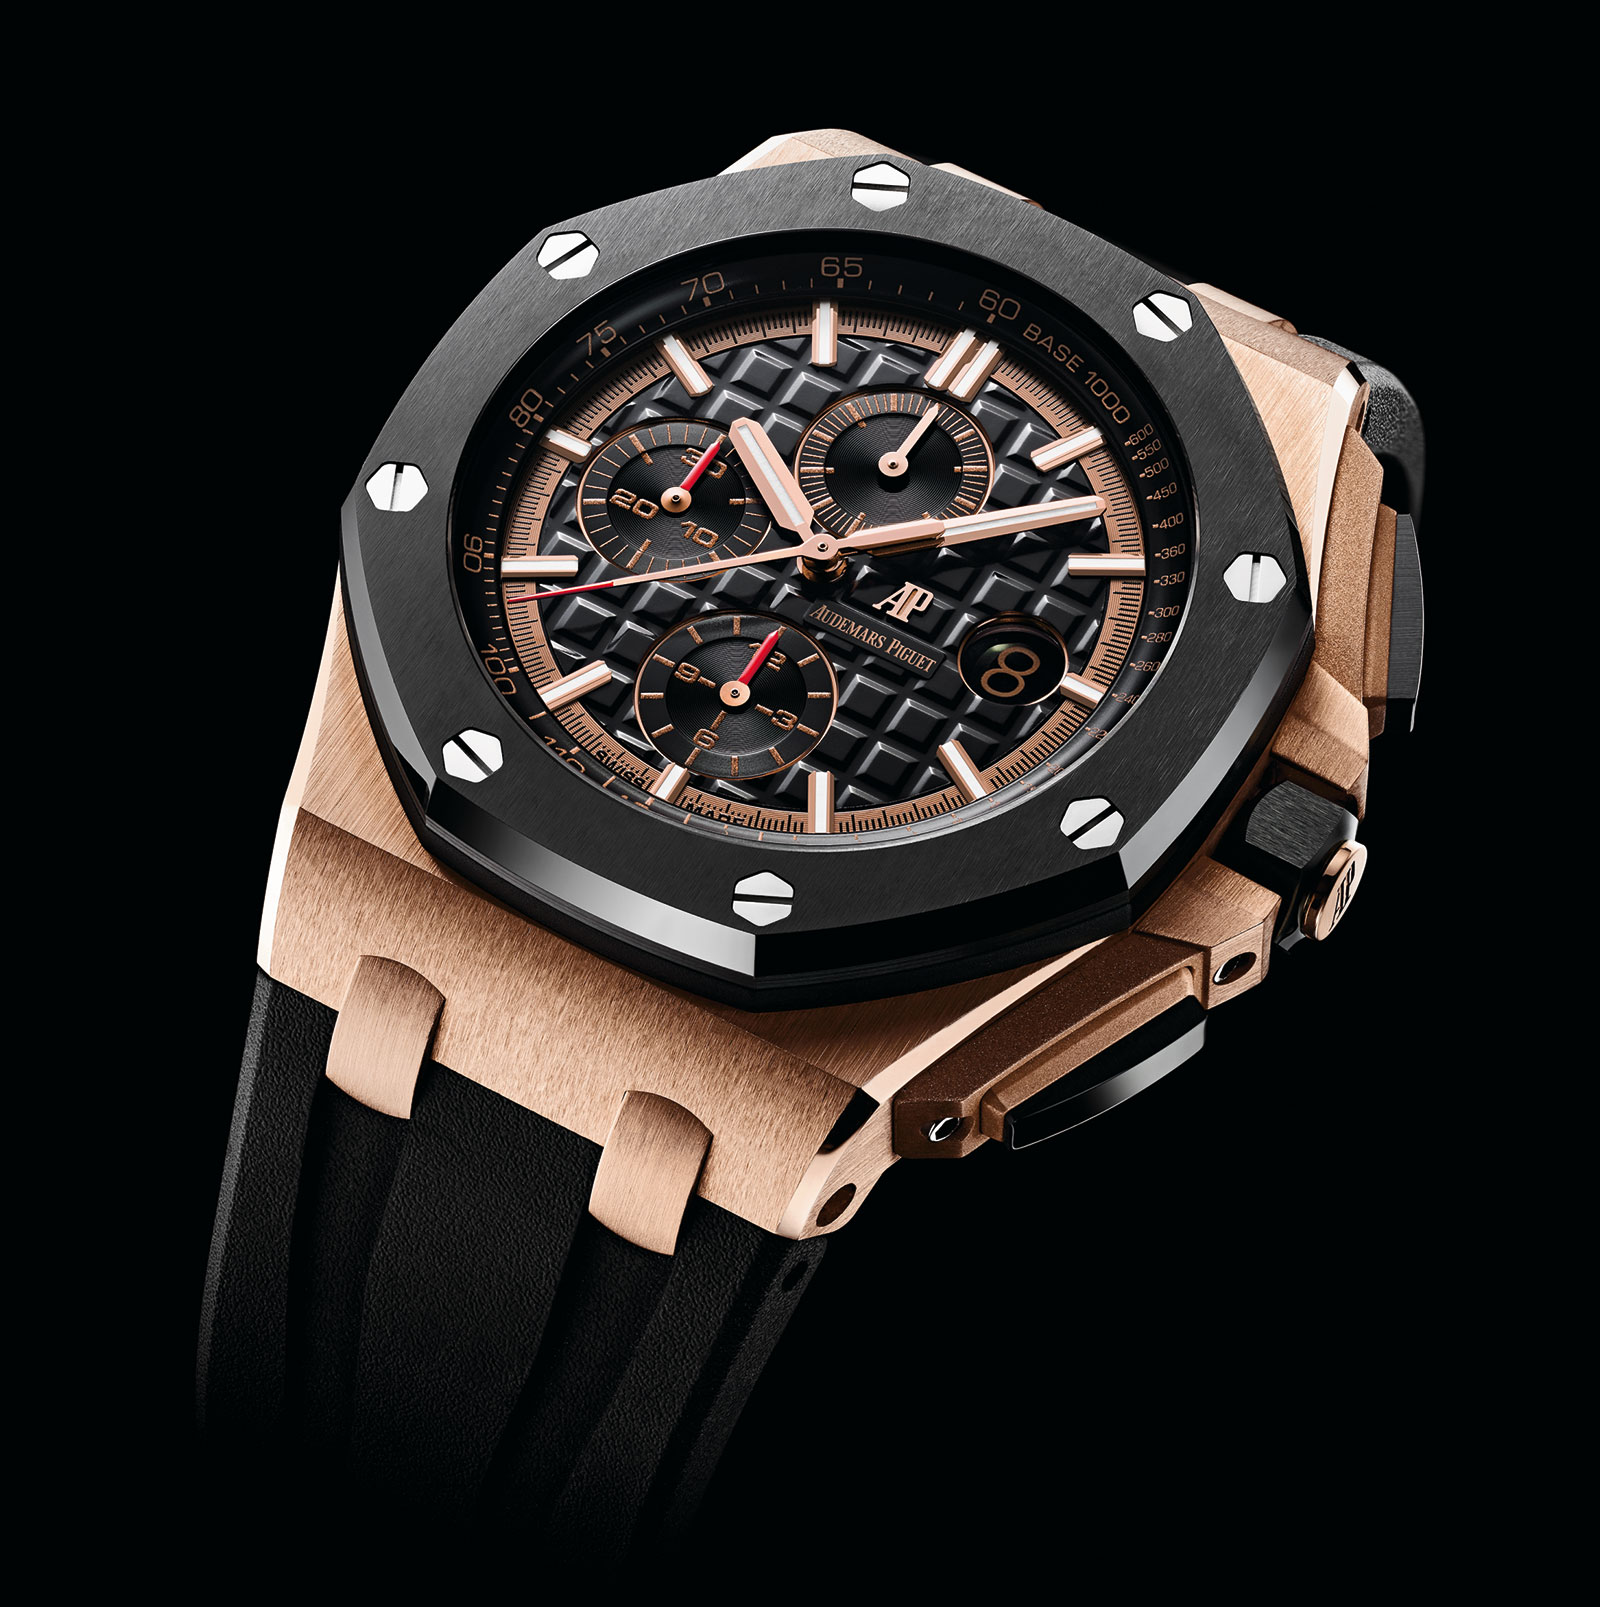 Audemars Piguet Royal Oak Offshore Novelty 26401RO